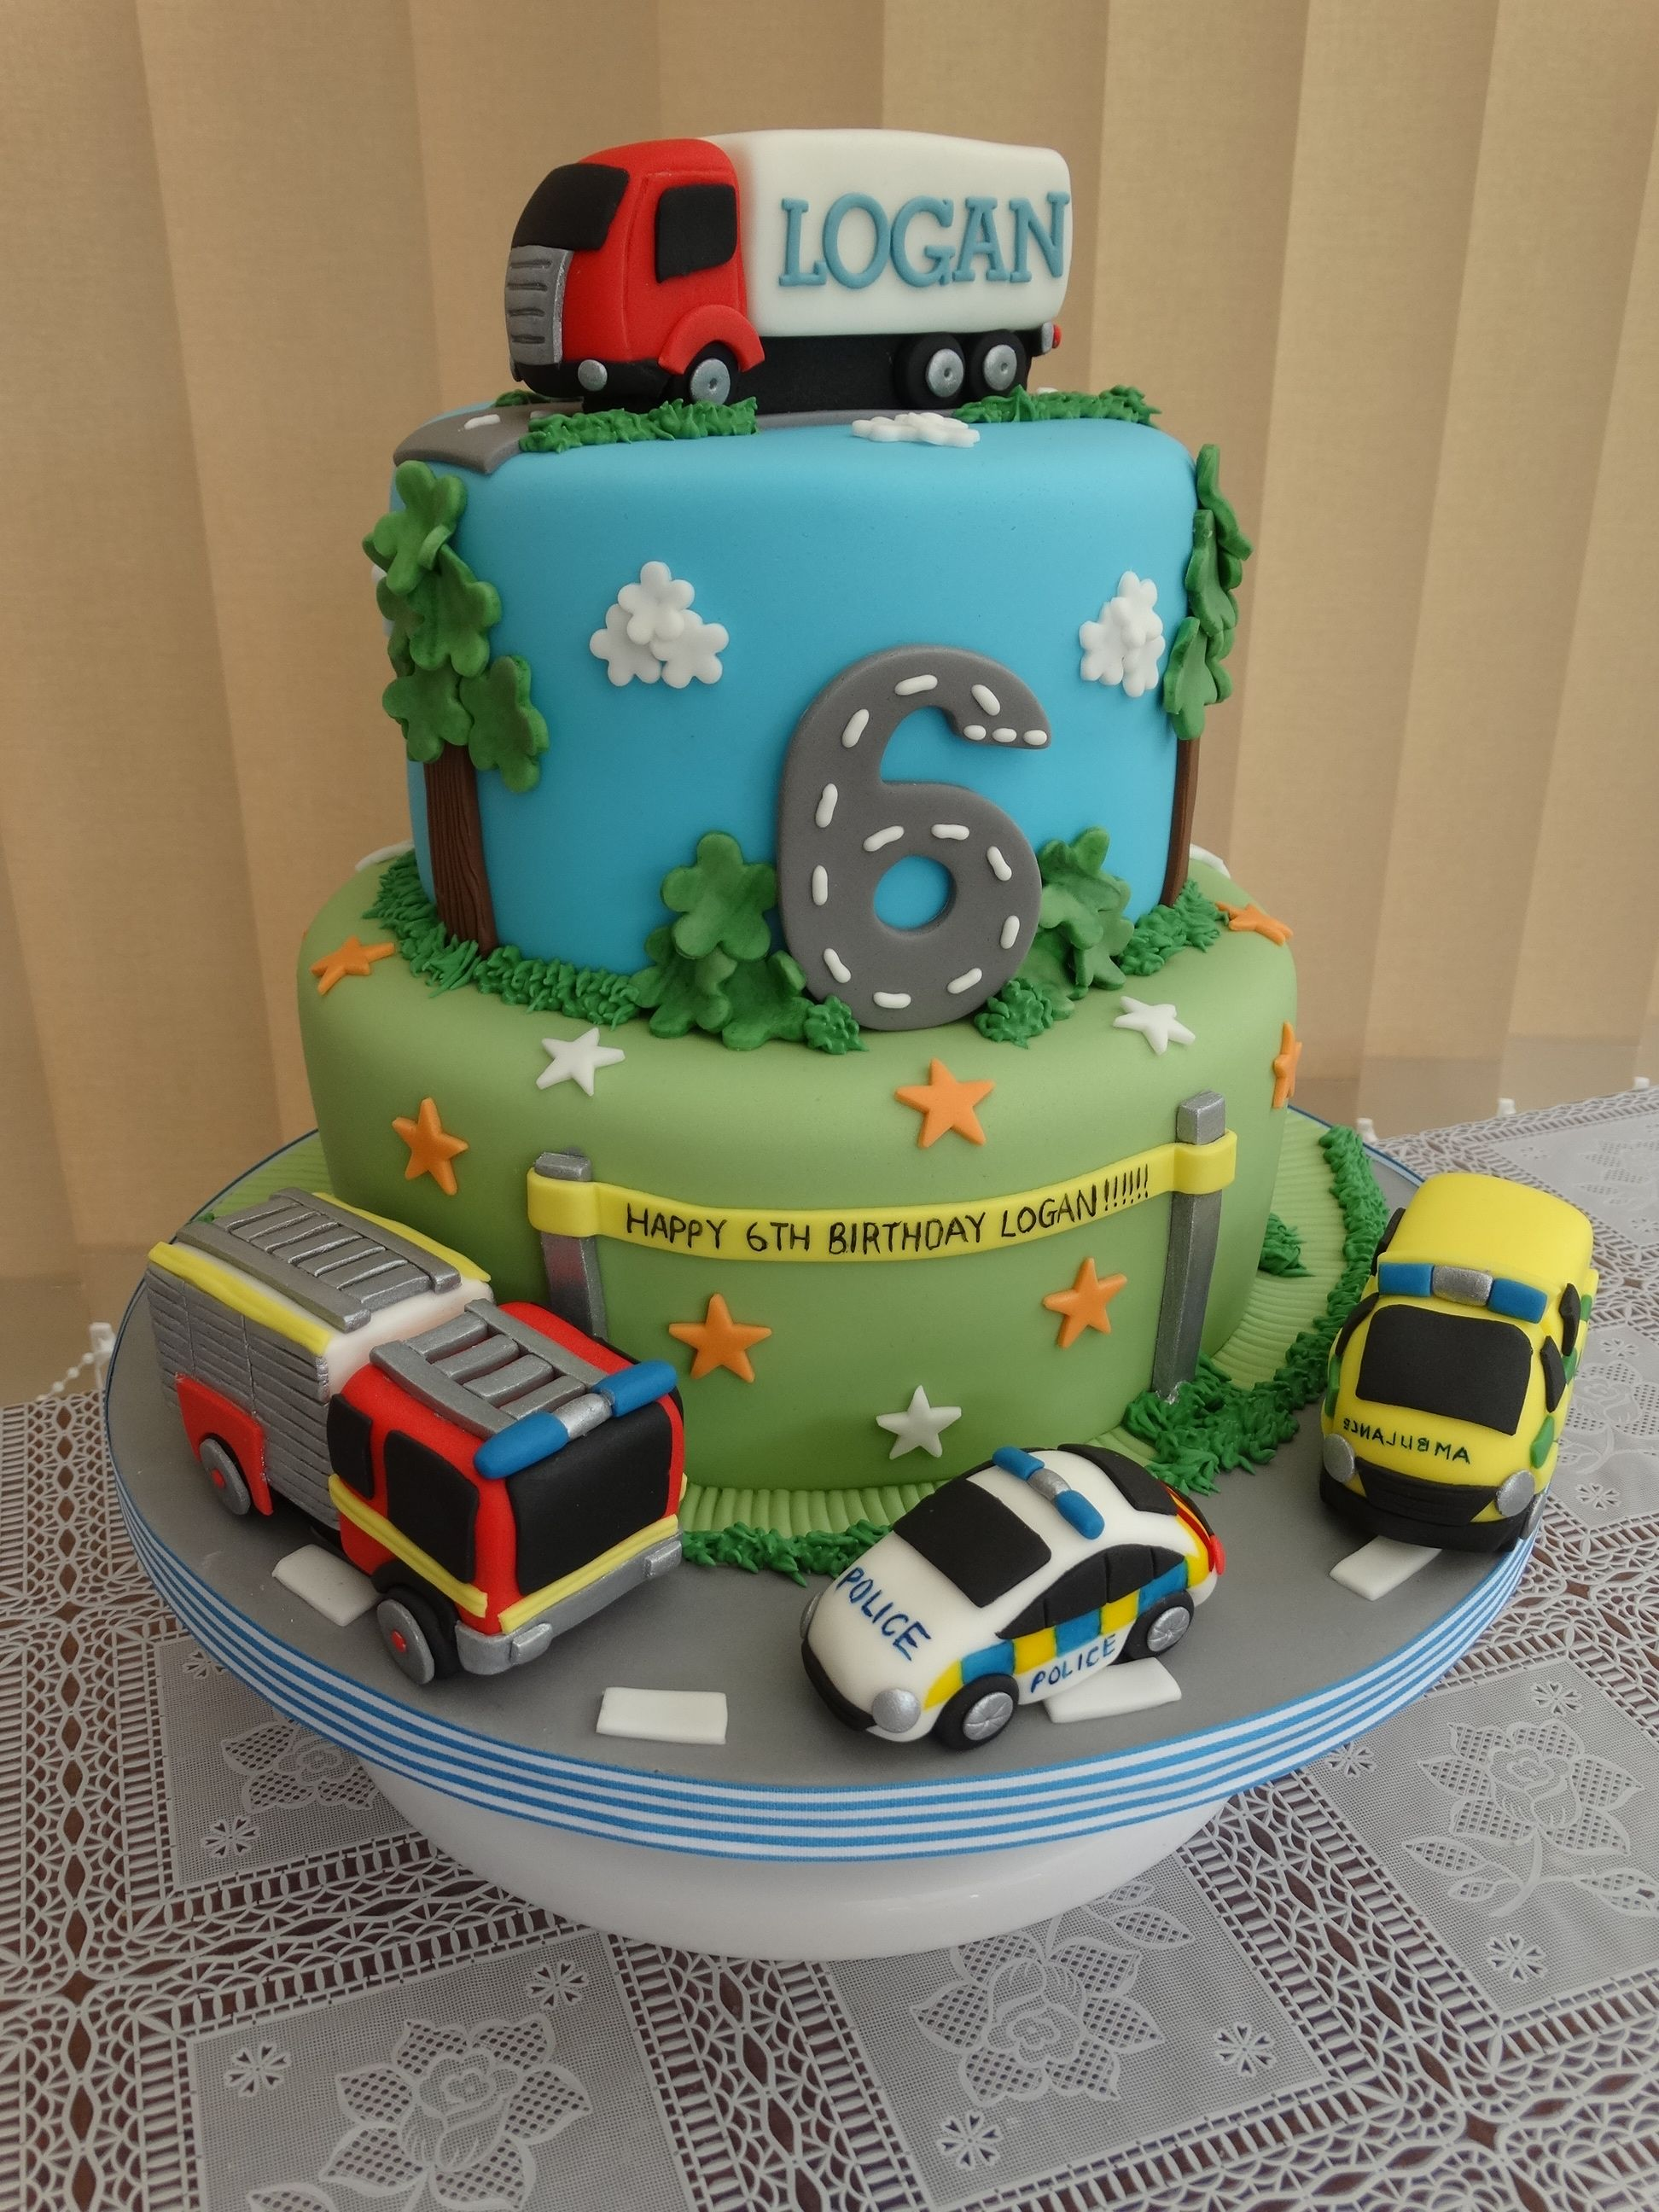 Kuchen Auto Emergency Services Vehicle And A Lorry Cake Xmcx Cake